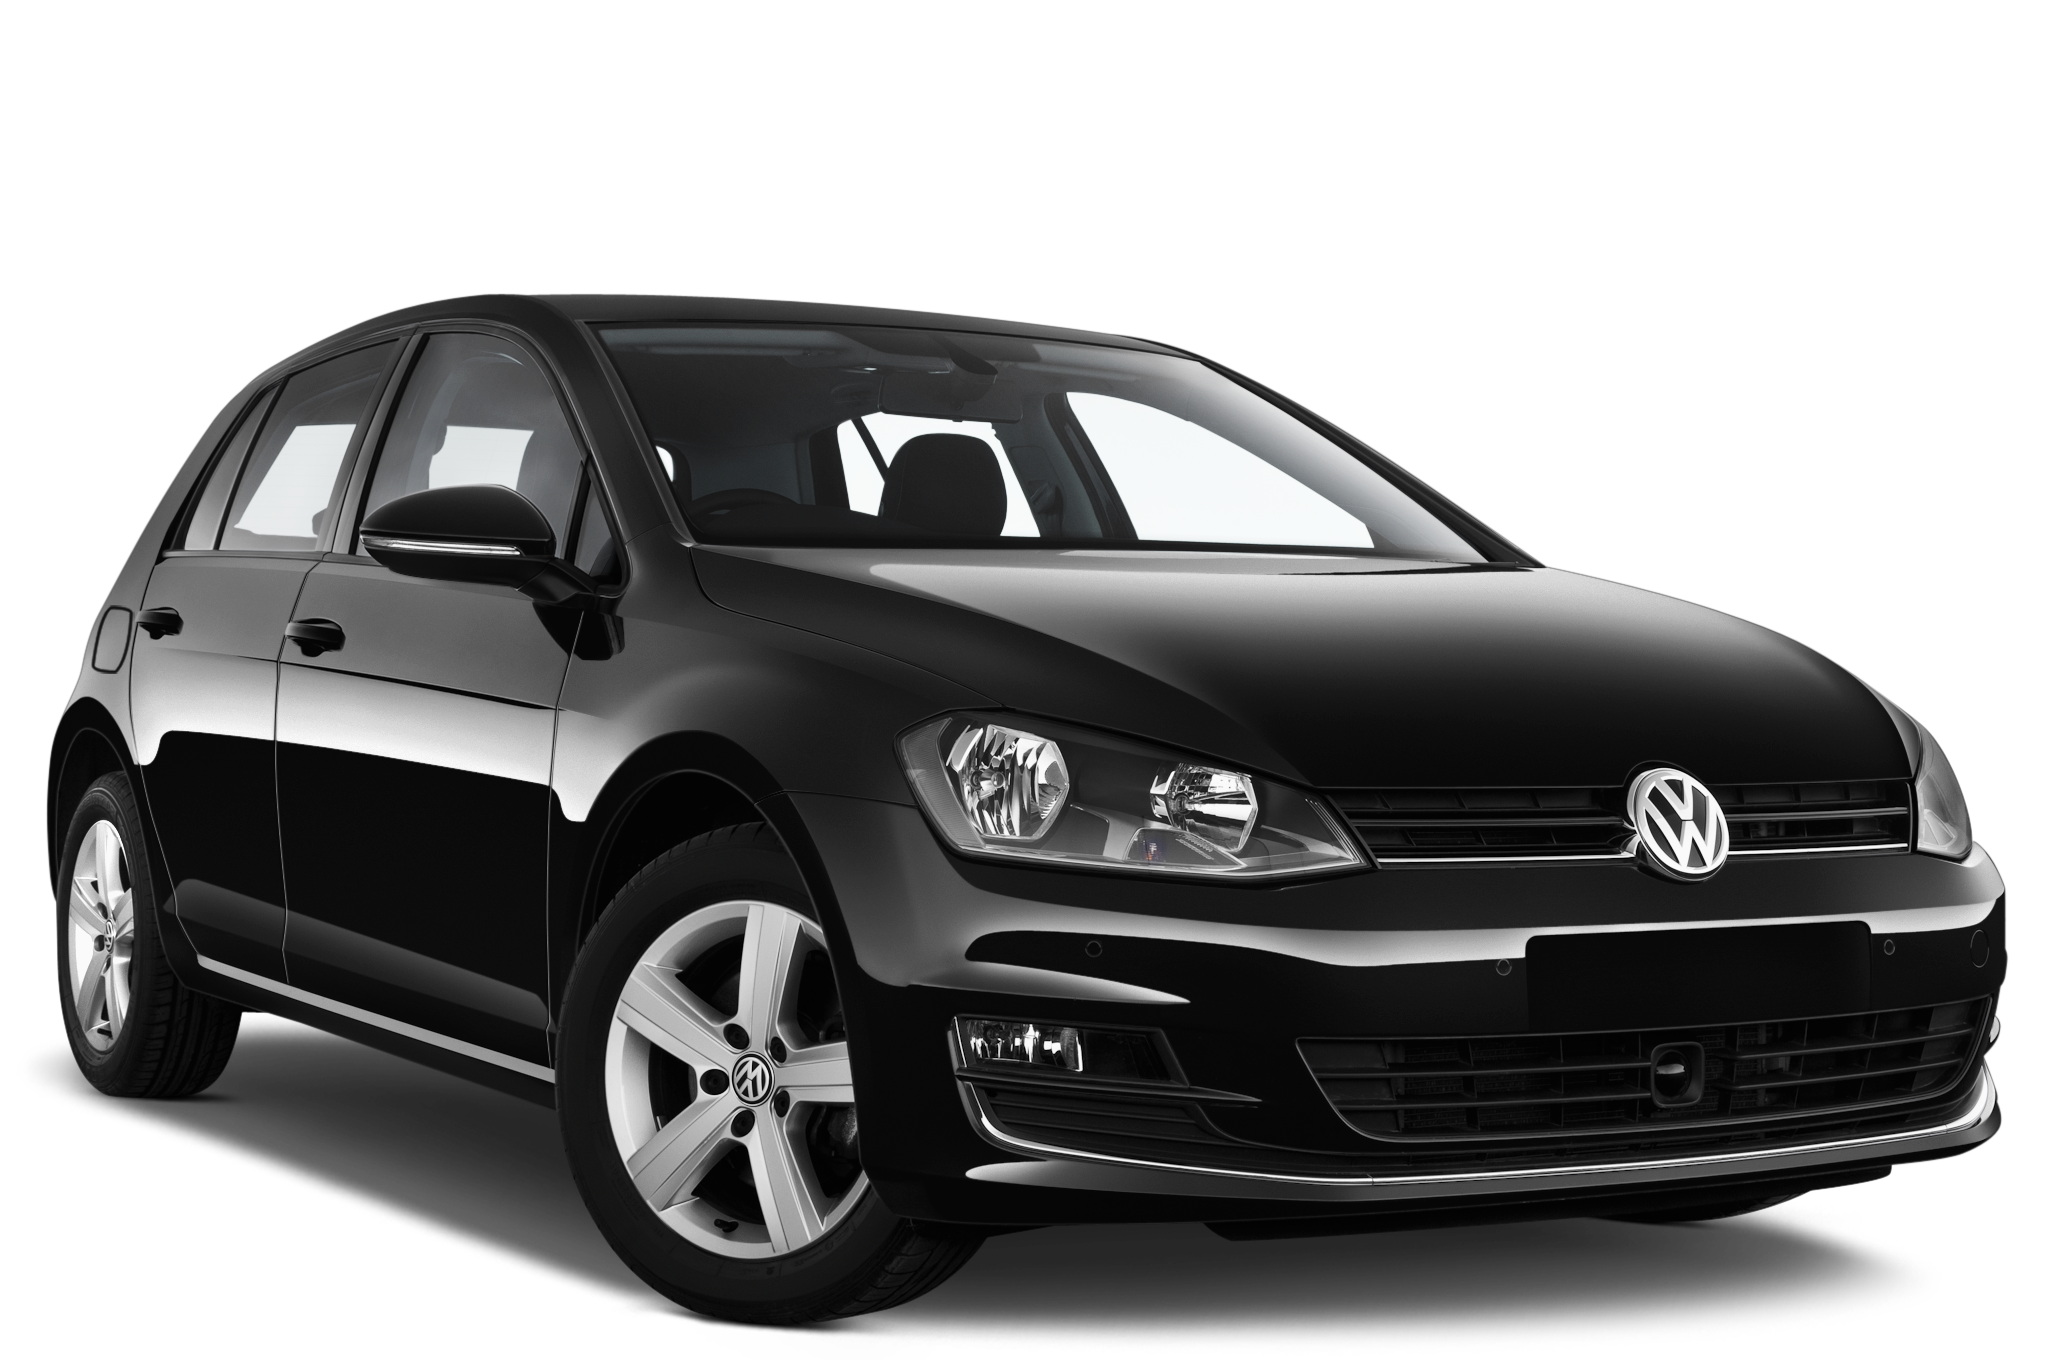 Volkswagen Golf company car front view